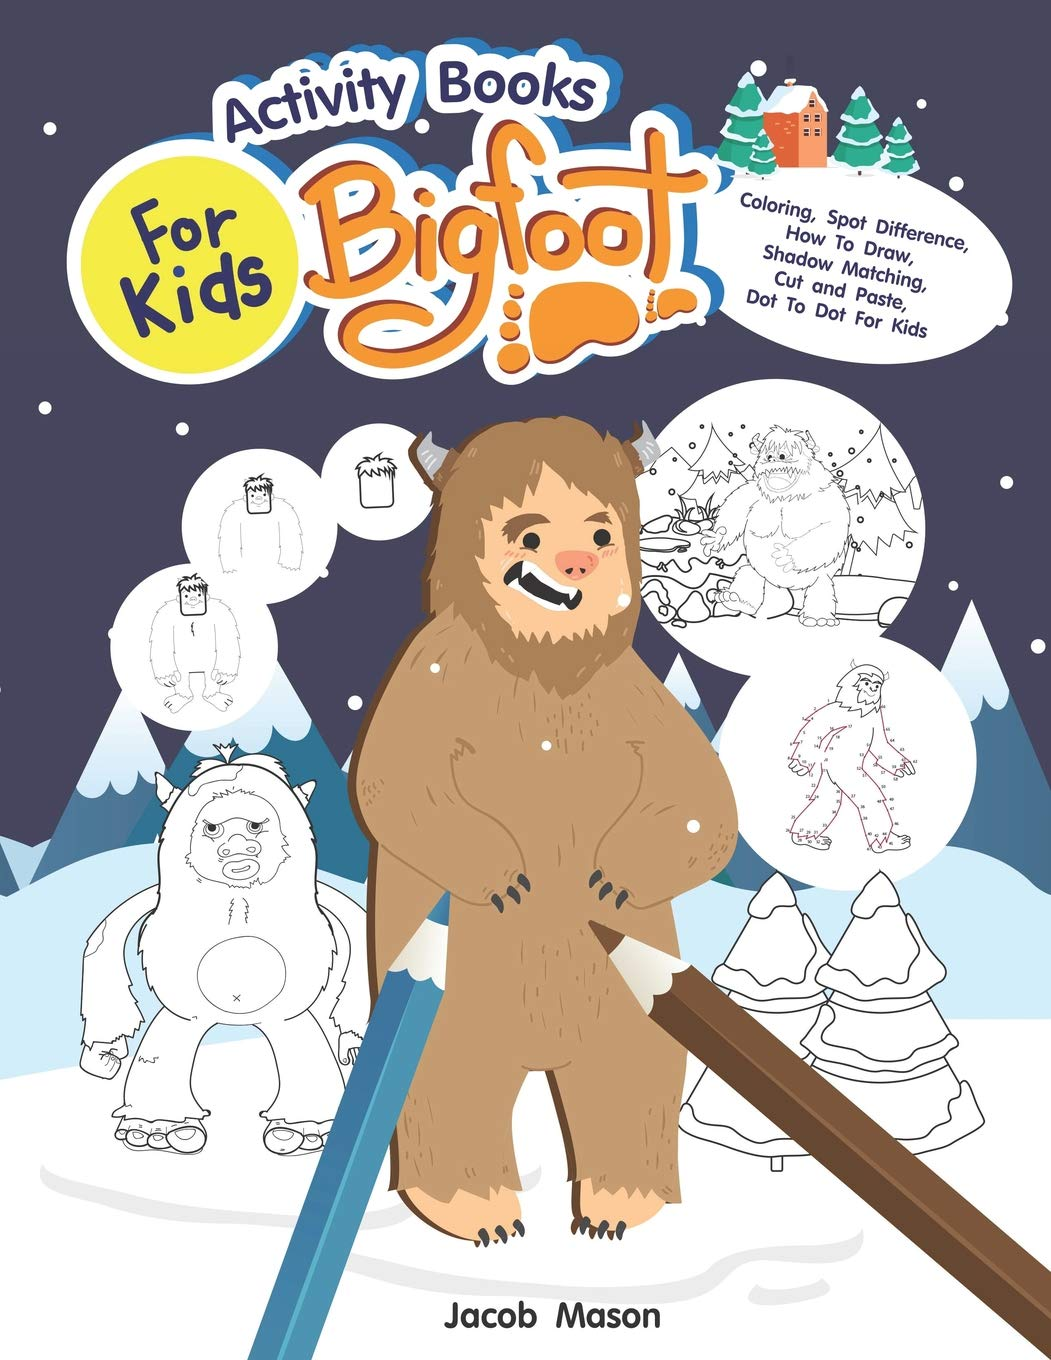 Activity Books For Kids Bigfoot Coloring Spot Difference How To Draw Shadow Matching Cut And Paste Dot To Dot For Kids Kids Activity Books Ages 4 8 8 12 Mason Jacob 9781728654126 Amazon Com Books